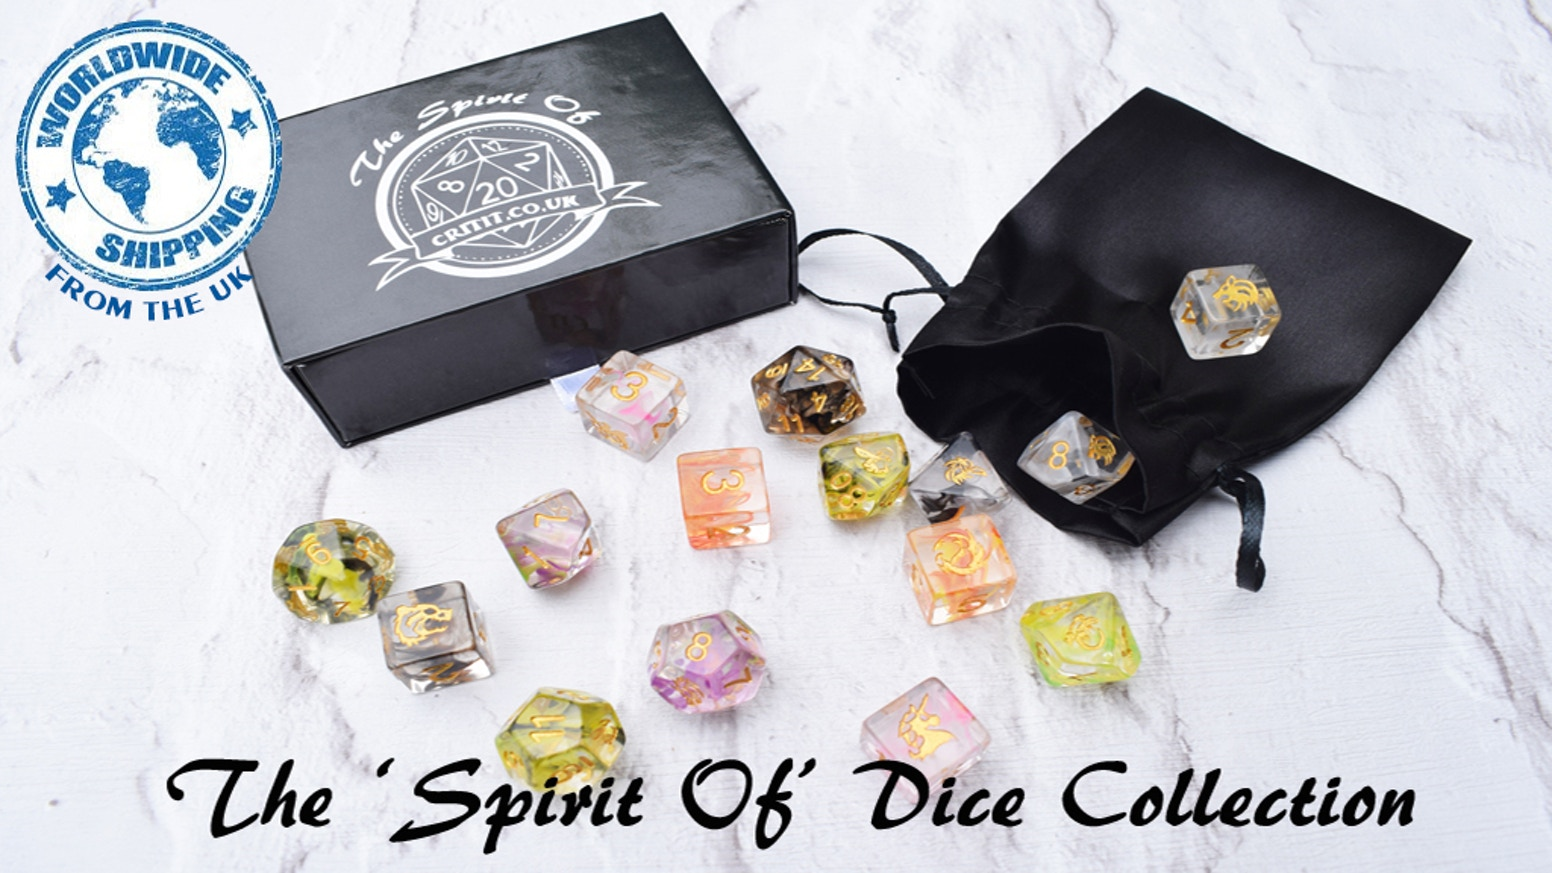 Introducing The 'Spirit Of' Range of Dice by Critit.co.uk